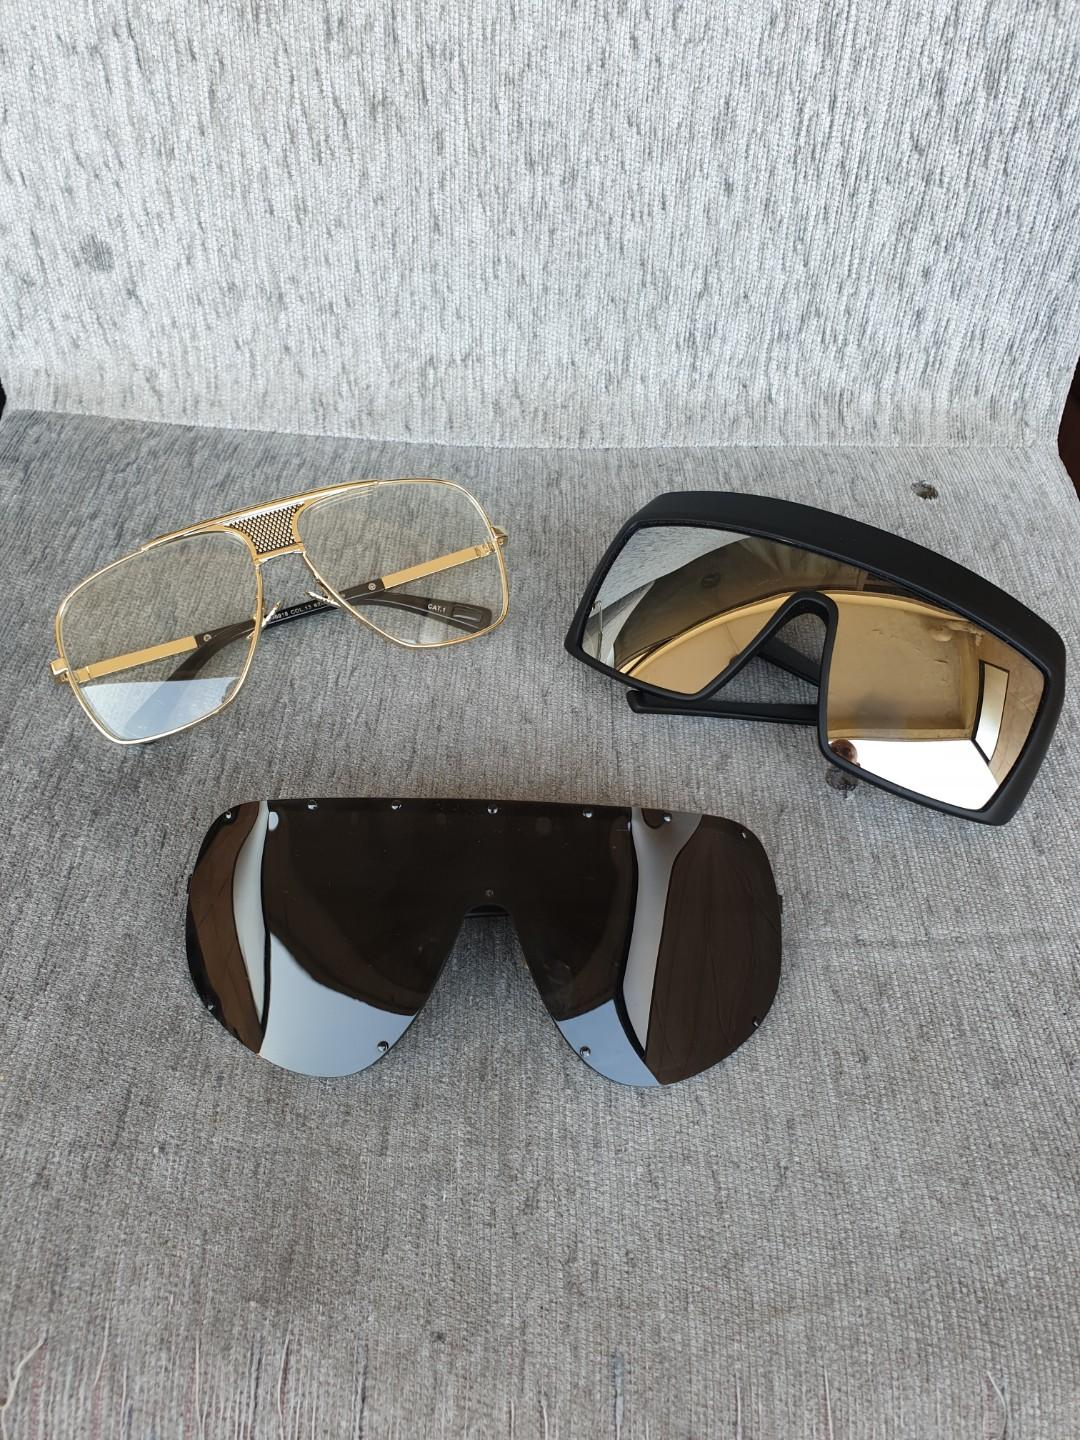 Oversized Shades Sunglasses 20 Each 45 For All 3 Top Left And Bottom Sold Men S Fashion Accessories Eyewear Sunglasses On Carousell